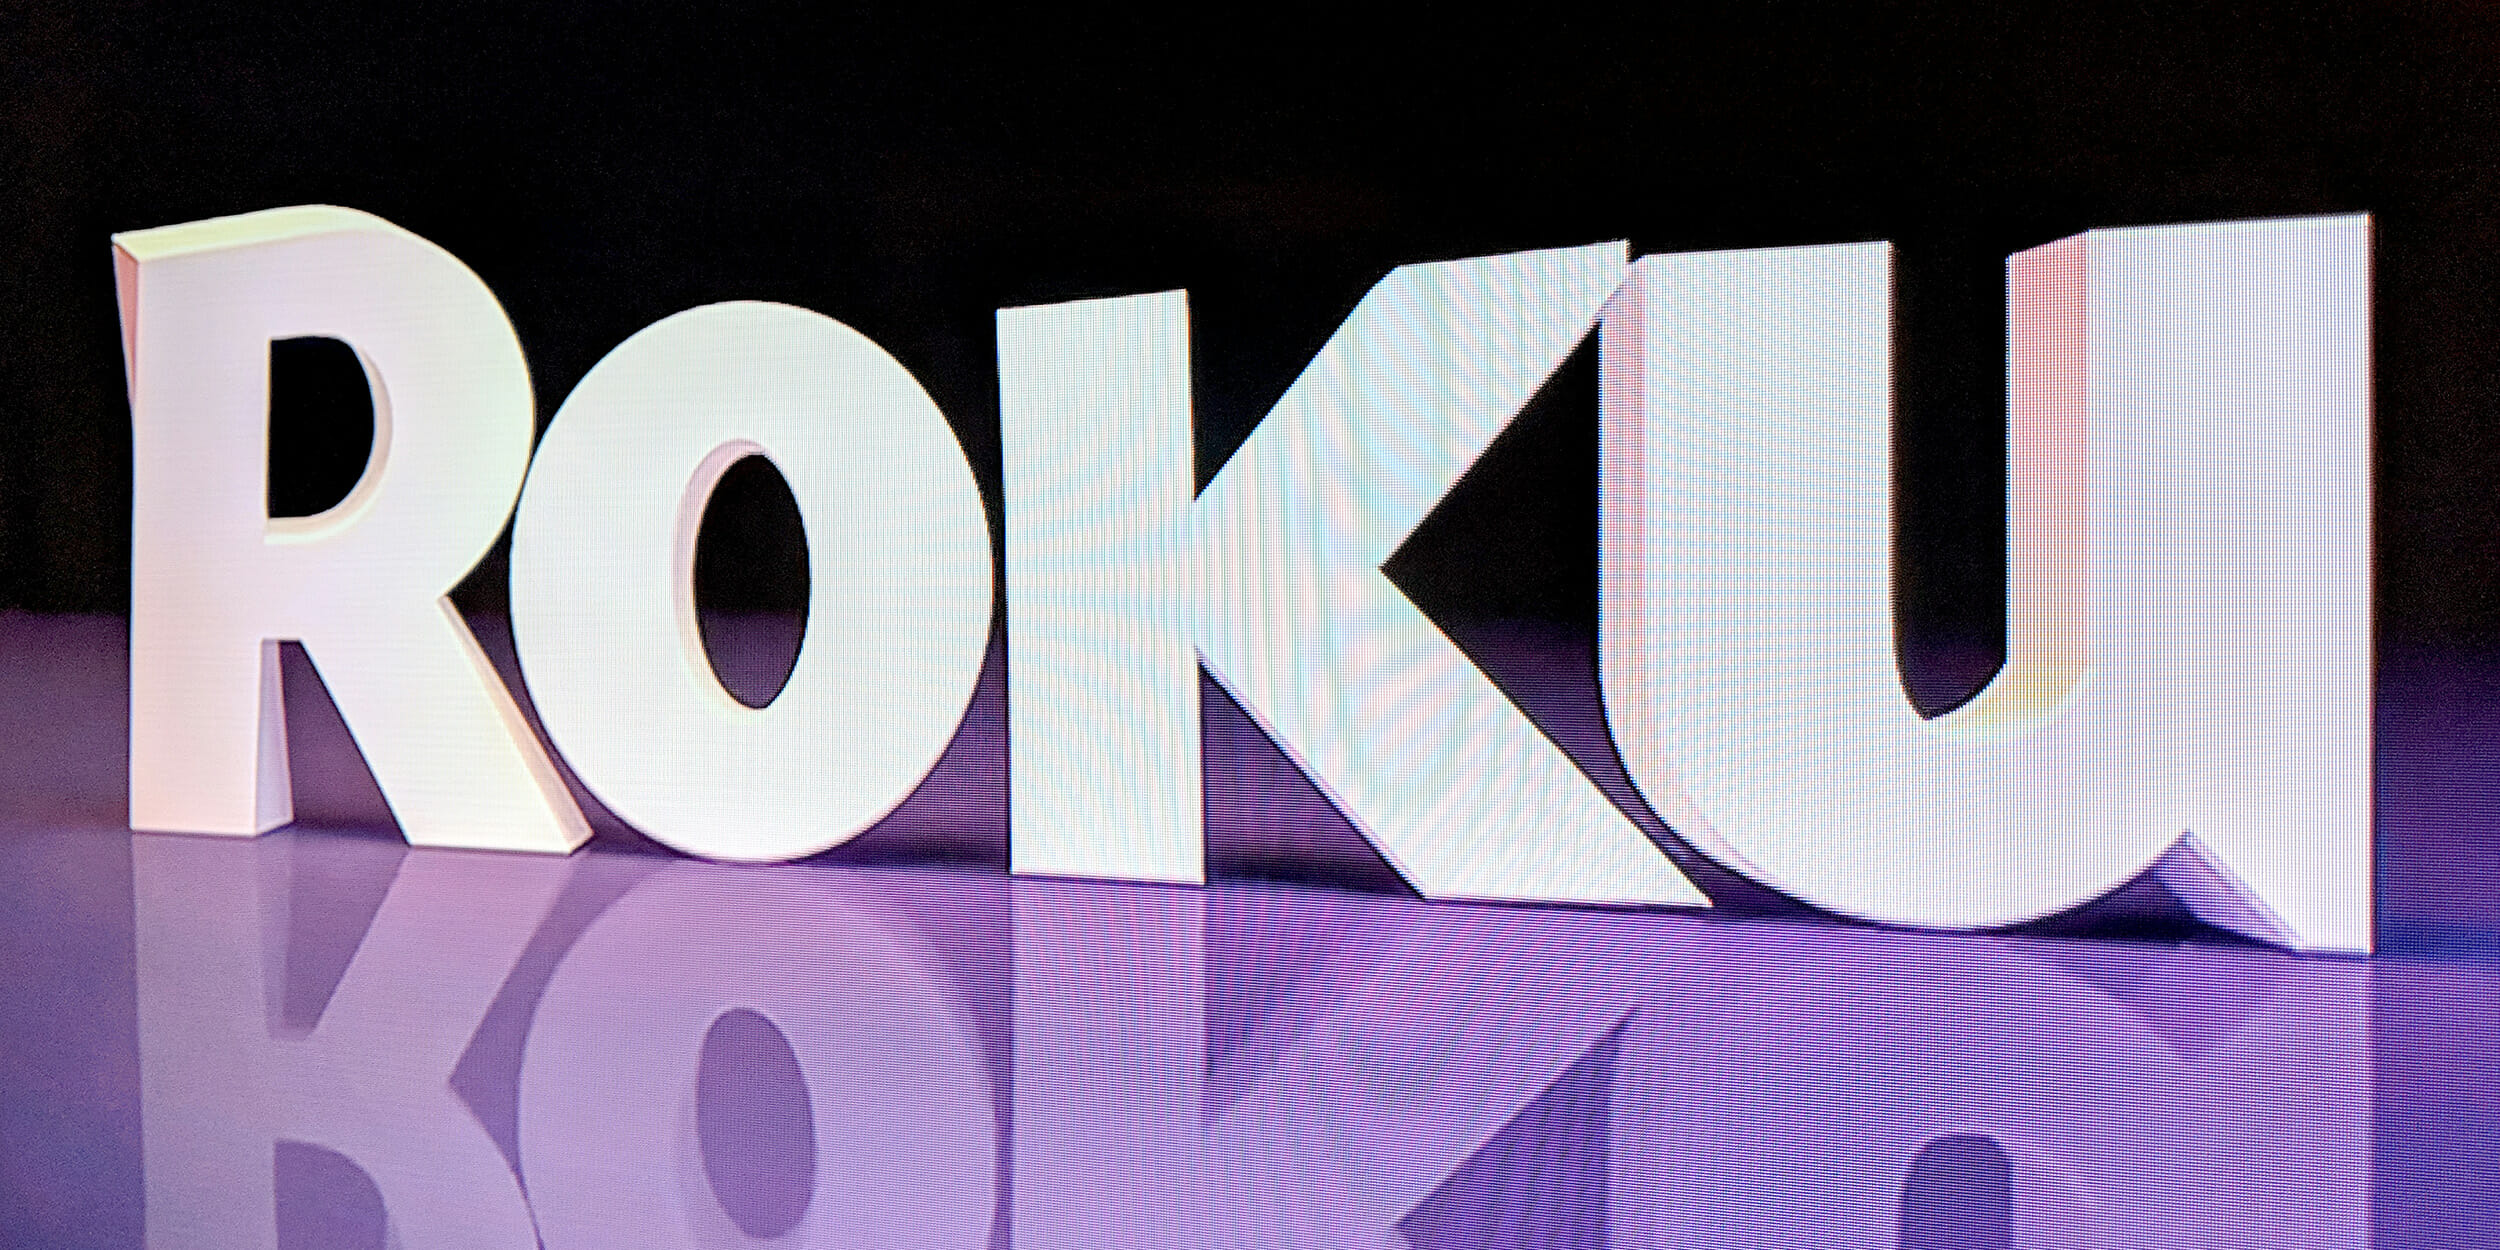 Roku Hacks: 20 Mind-Blowing Roku Tricks Every User Should Know